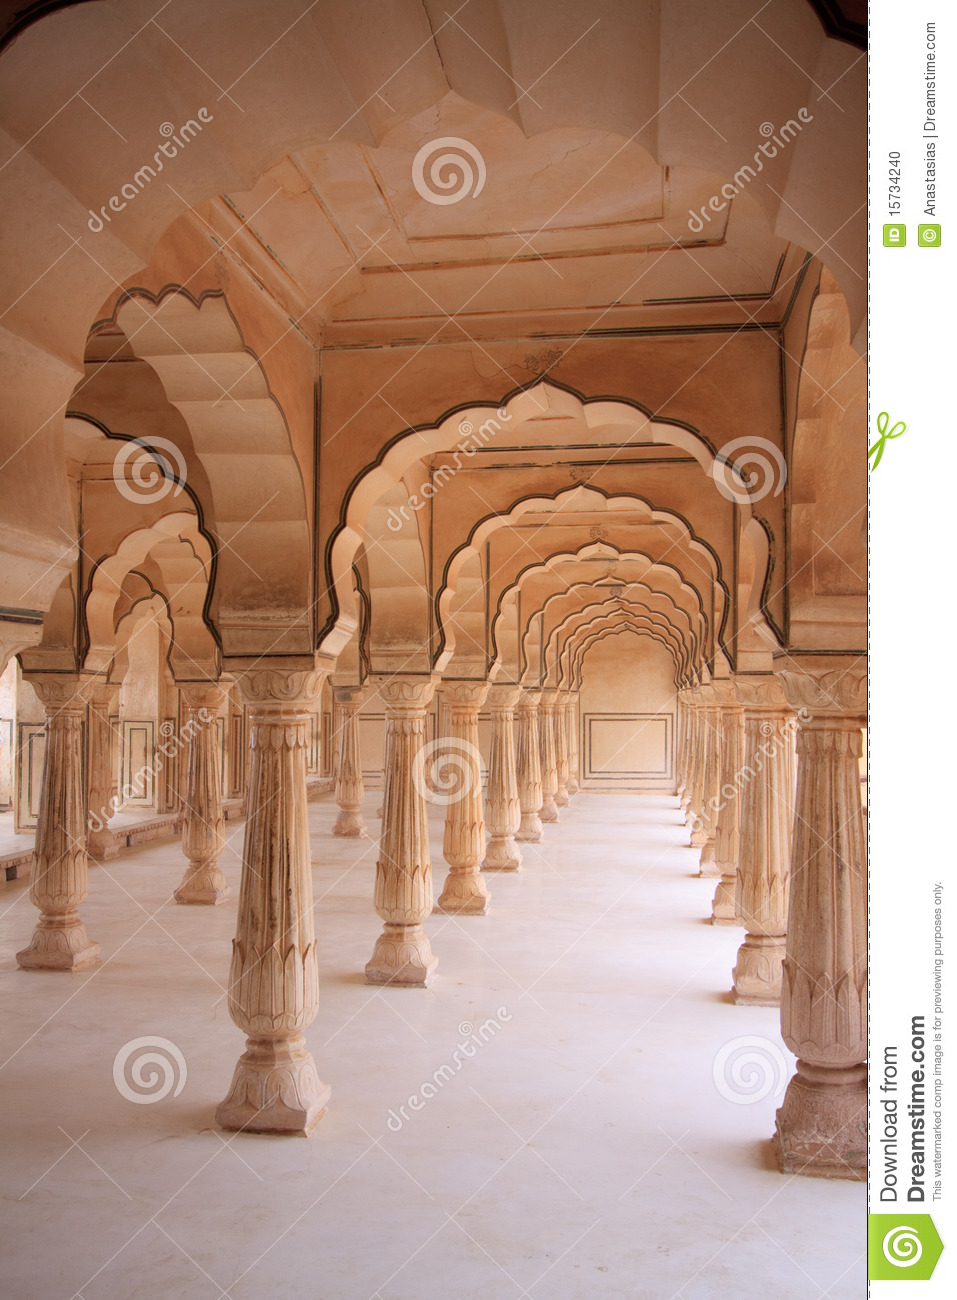 Rajasthan Style Indian Architecture Stock Photo Image 15734240